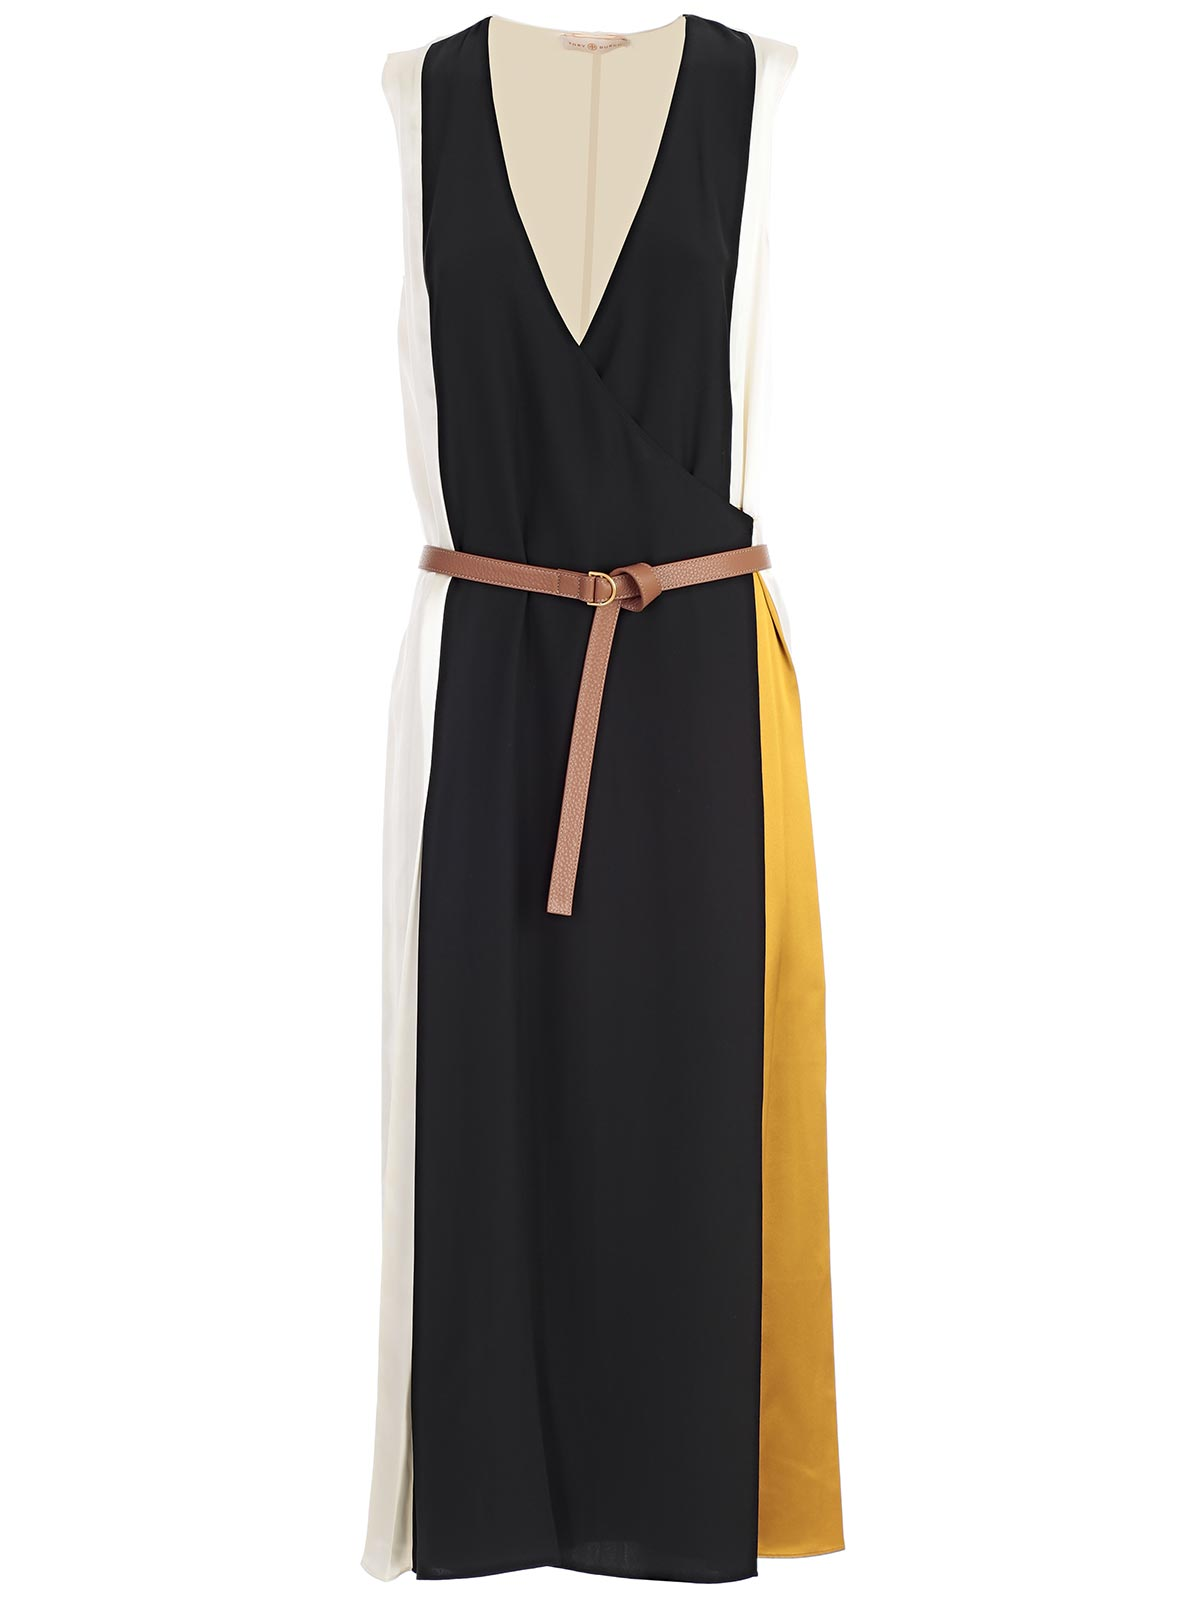 Picture of TORY BURCH DRESS